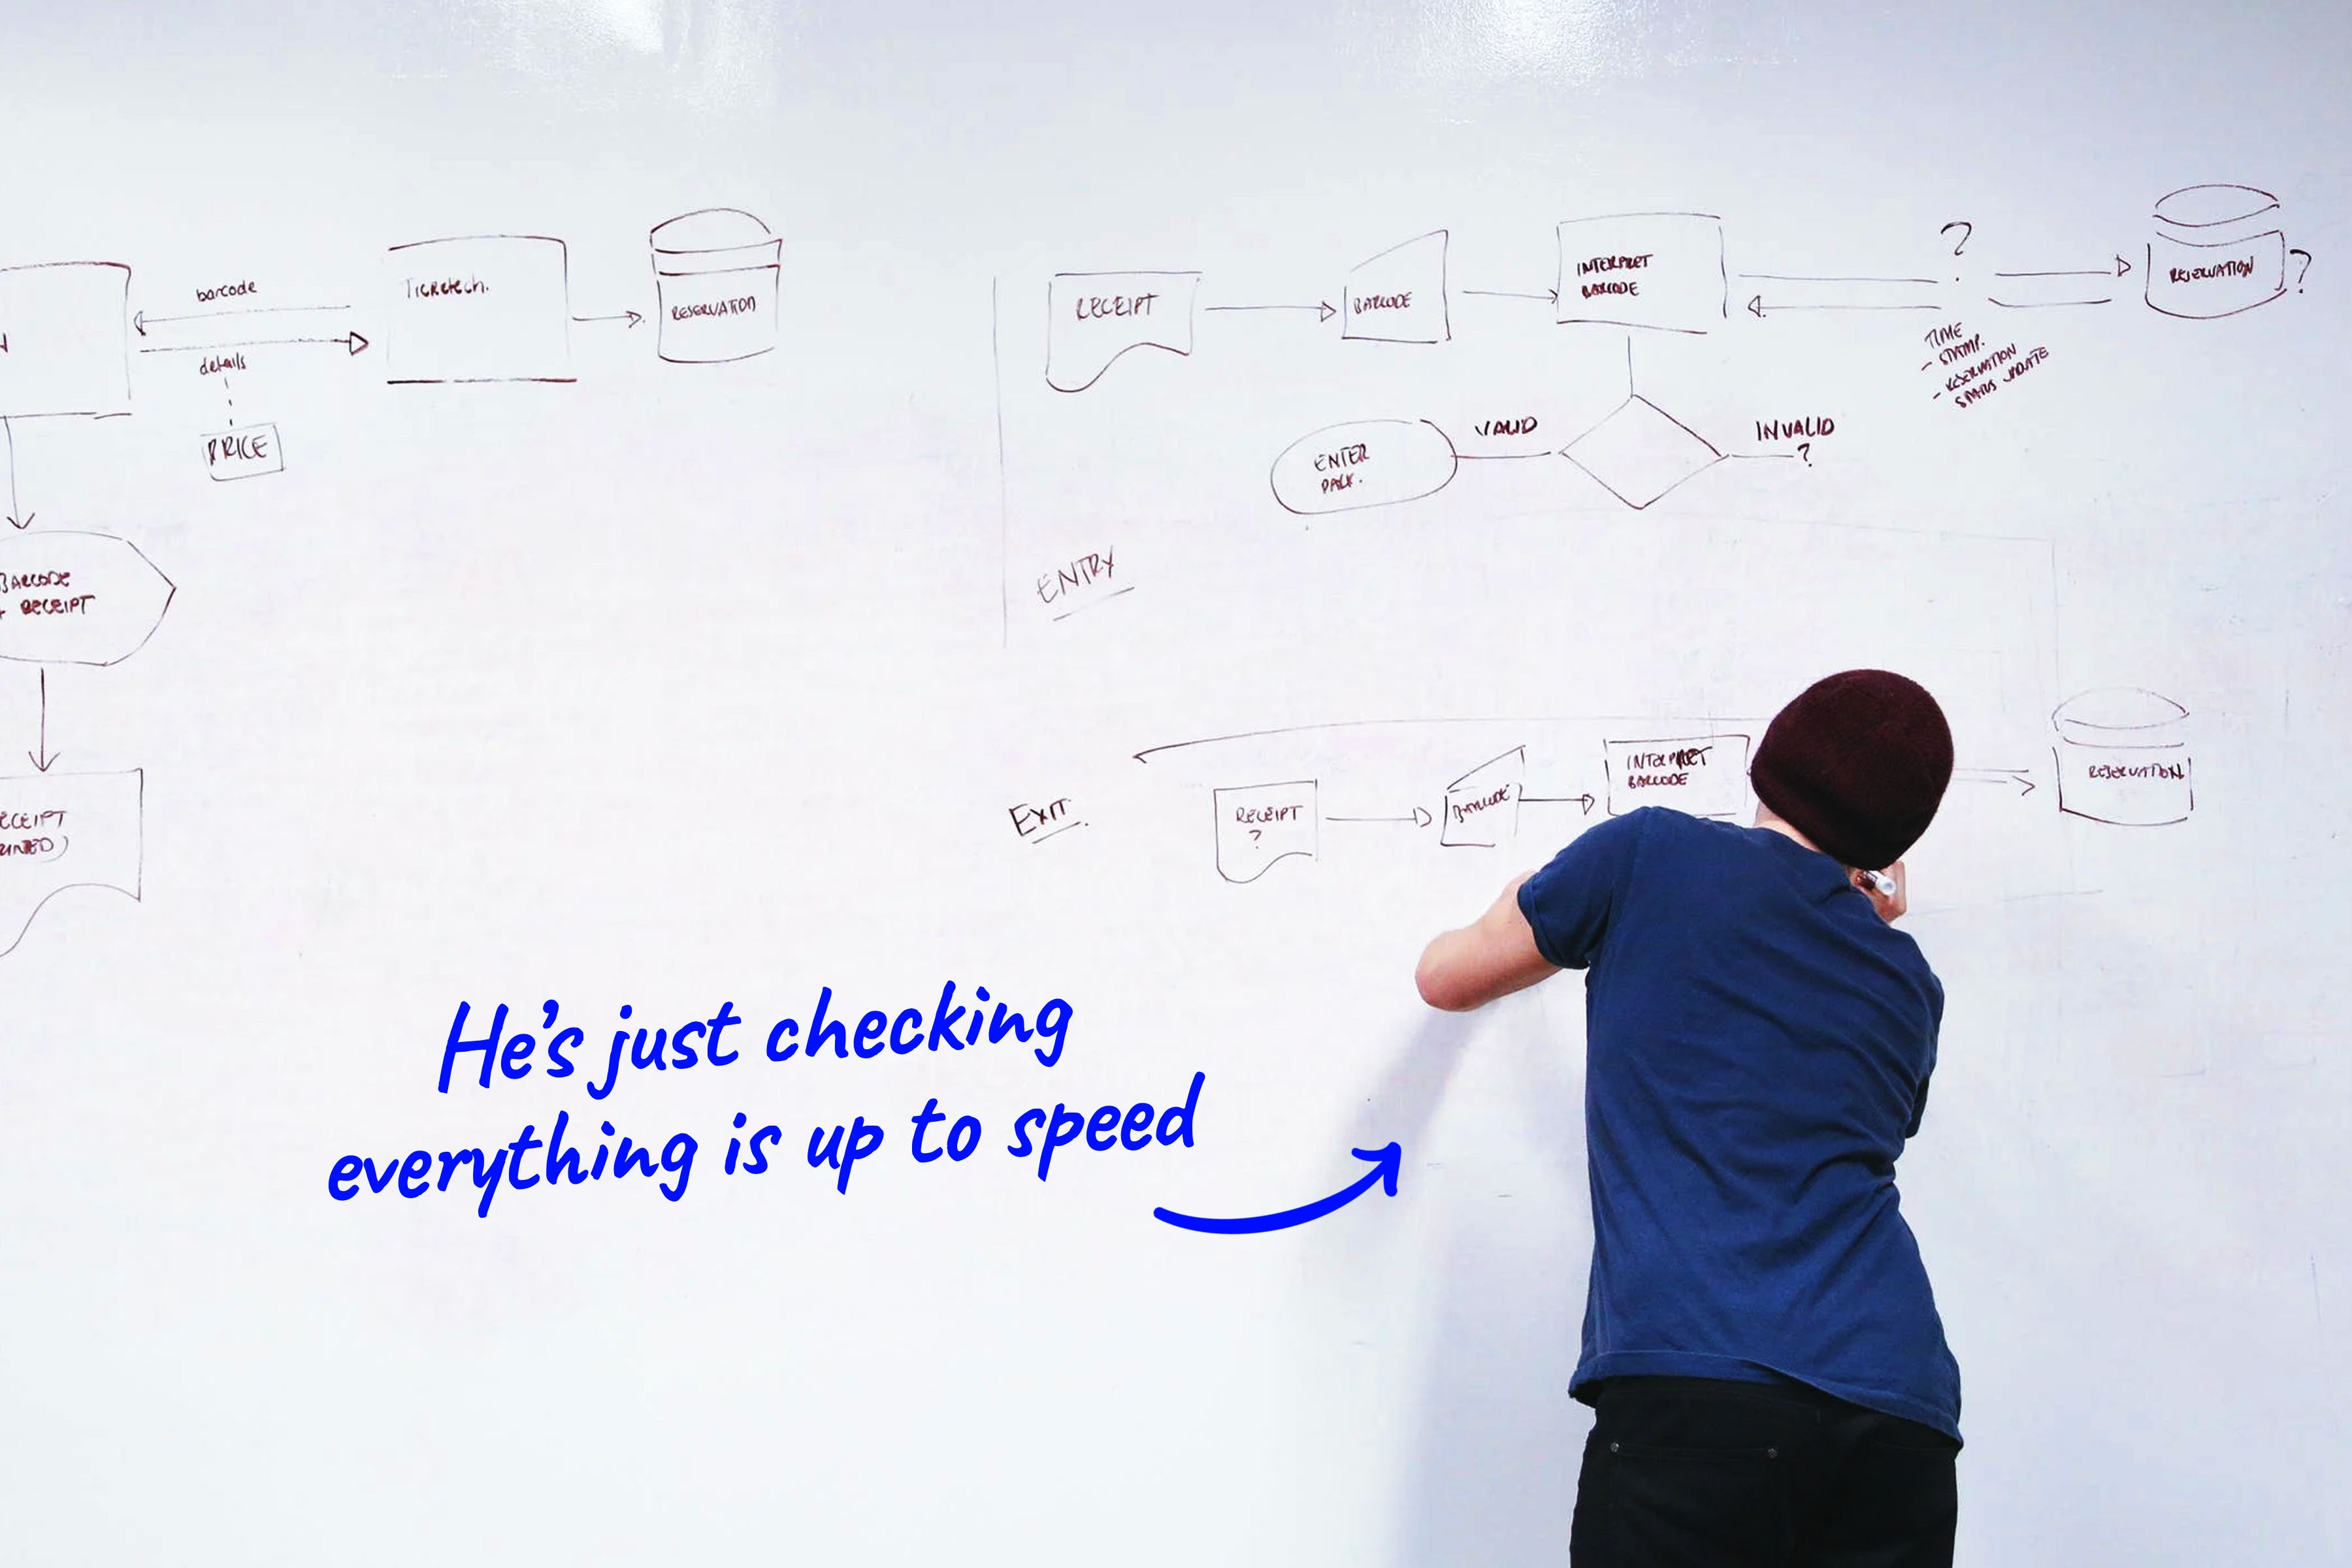 man process mapping on a whiteboard